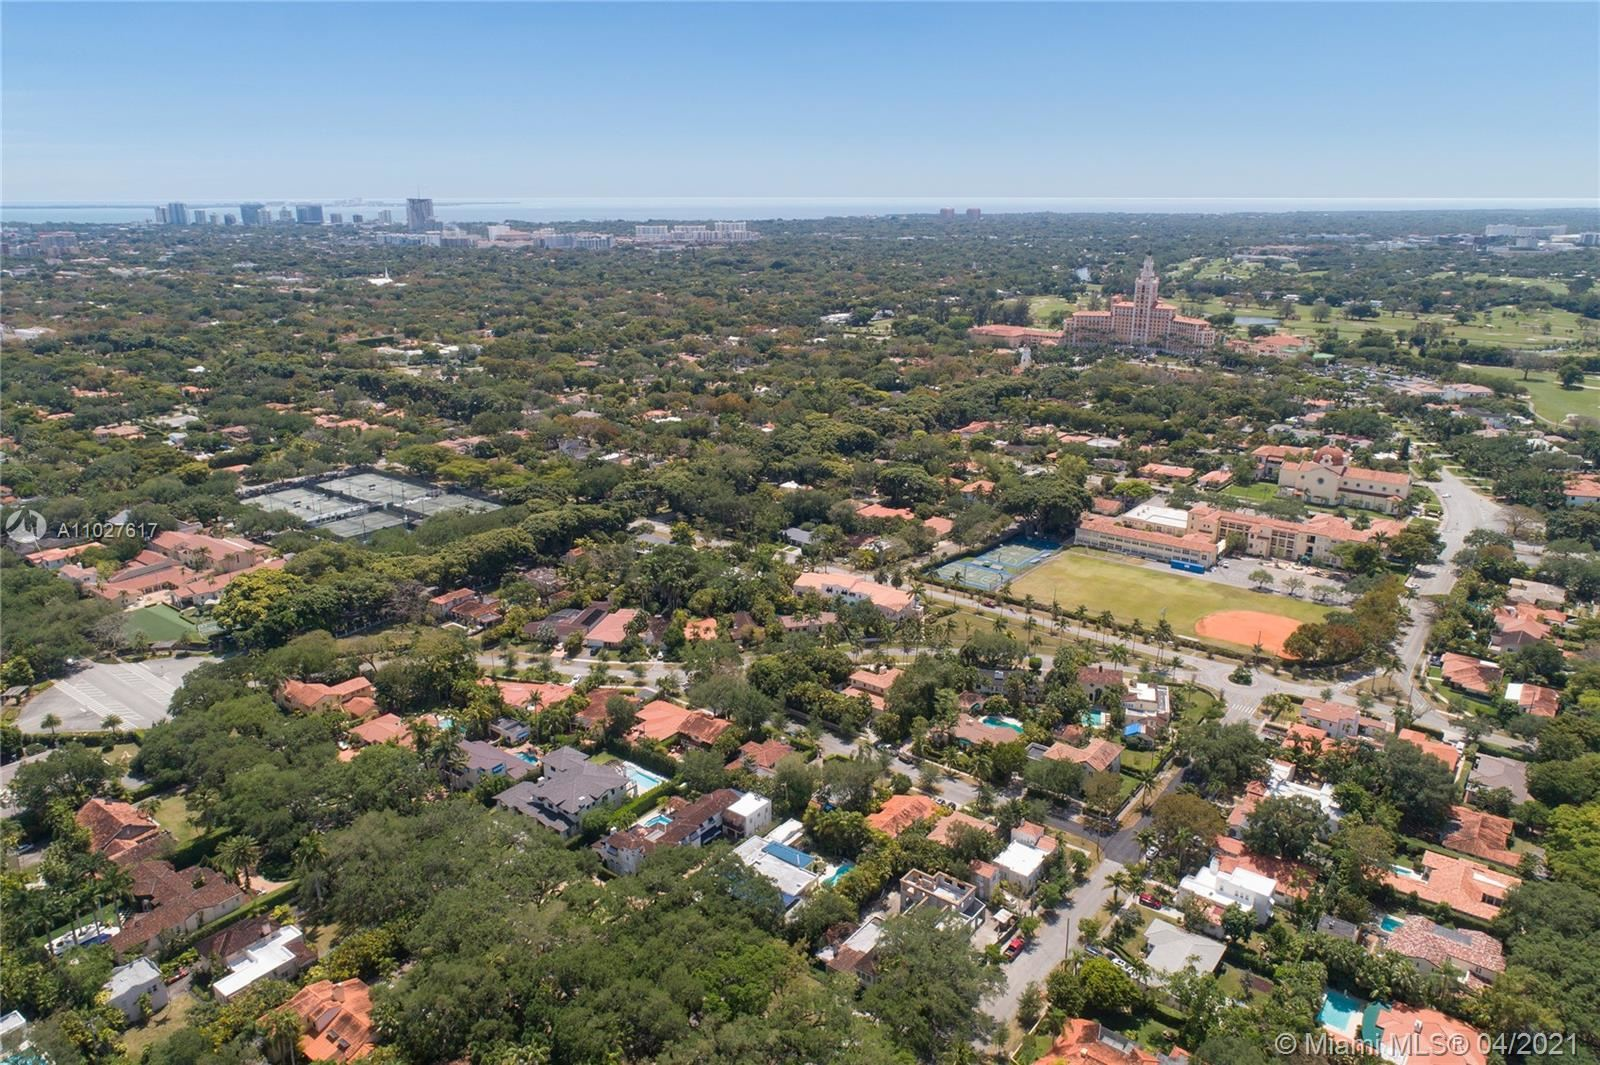 Photo of 1242 Coral Way, Coral Gables, FL 33134 (MLS # A11027617)